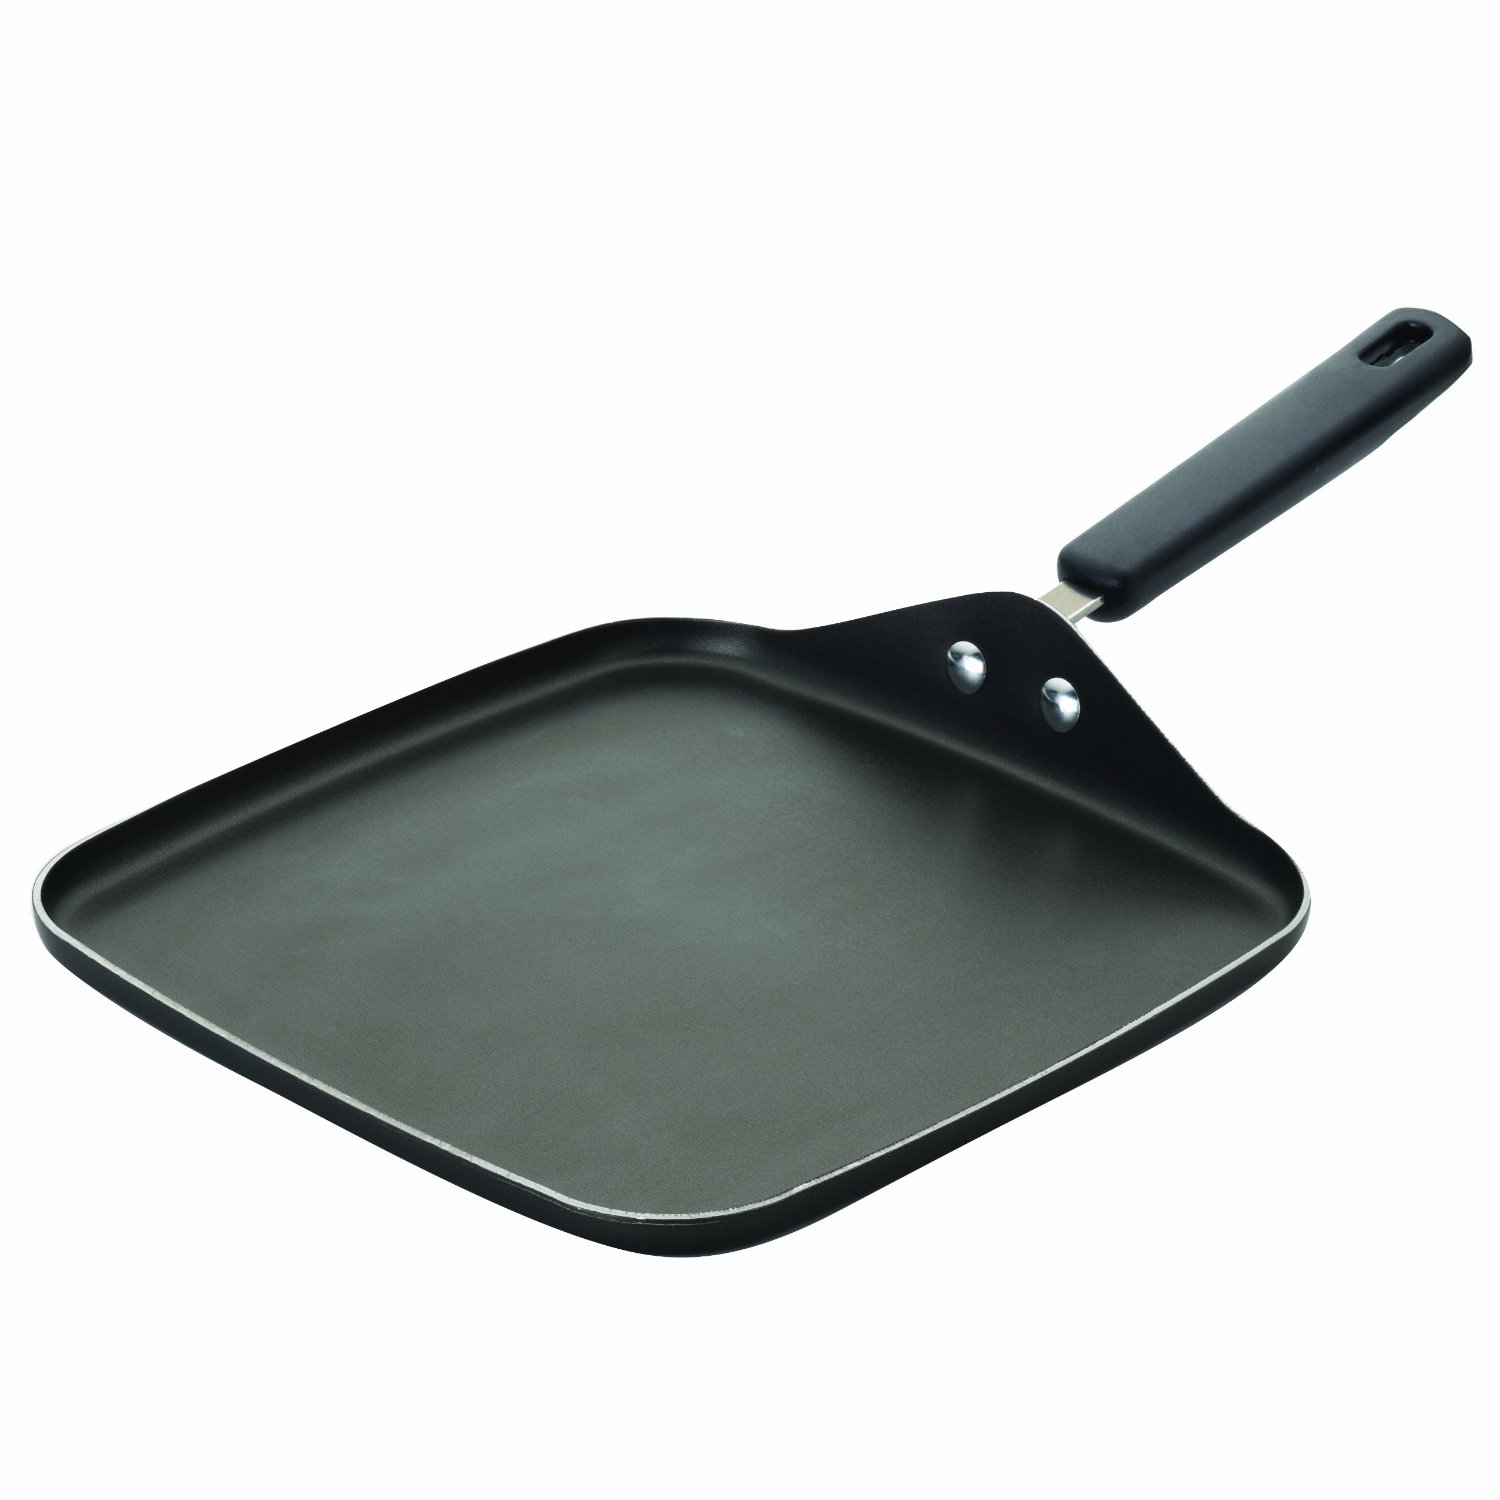 Stone Magic Marble Coated Frying Pan S With A Large Glass